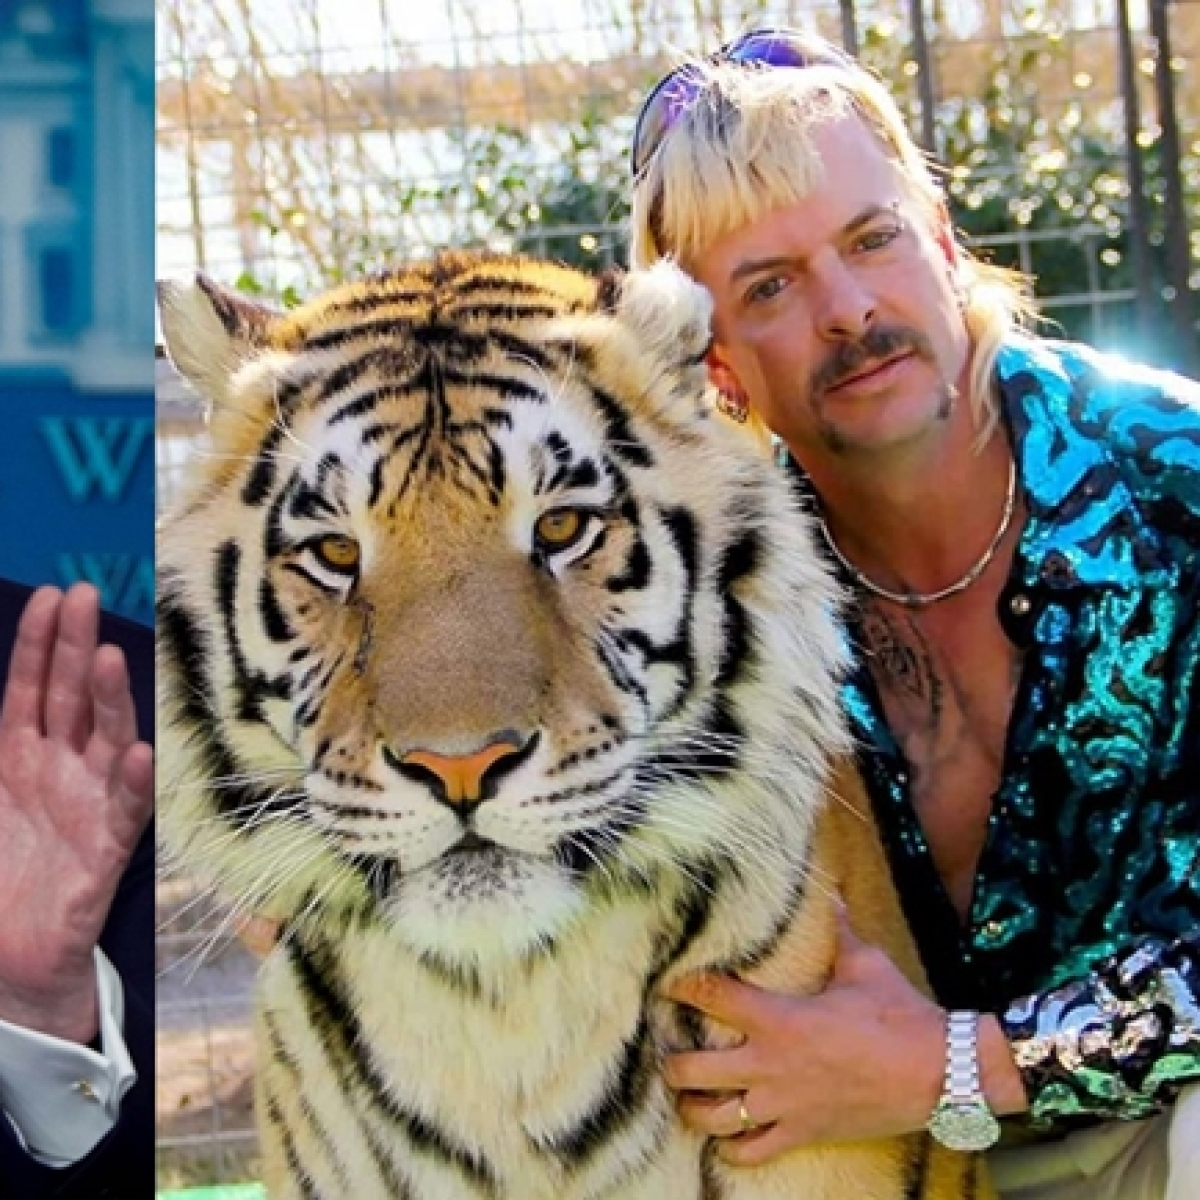 Donald Trump to look into the case of Joe Exotic from Netflix's popular show 'Tiger King'